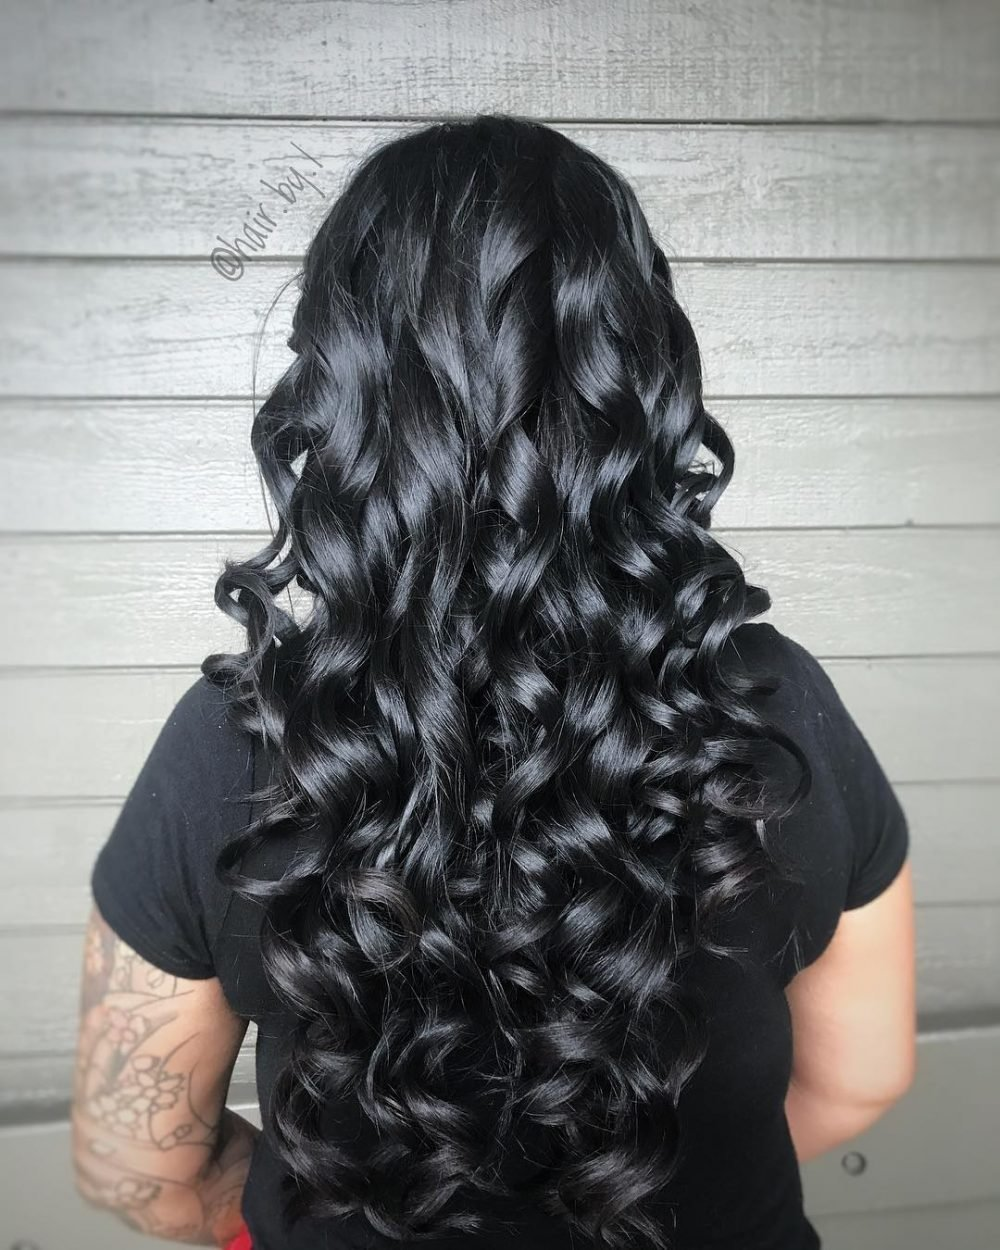 The Best 36 Curled Hairstyles Tending In 2019 So Grab Your Hair Pictures